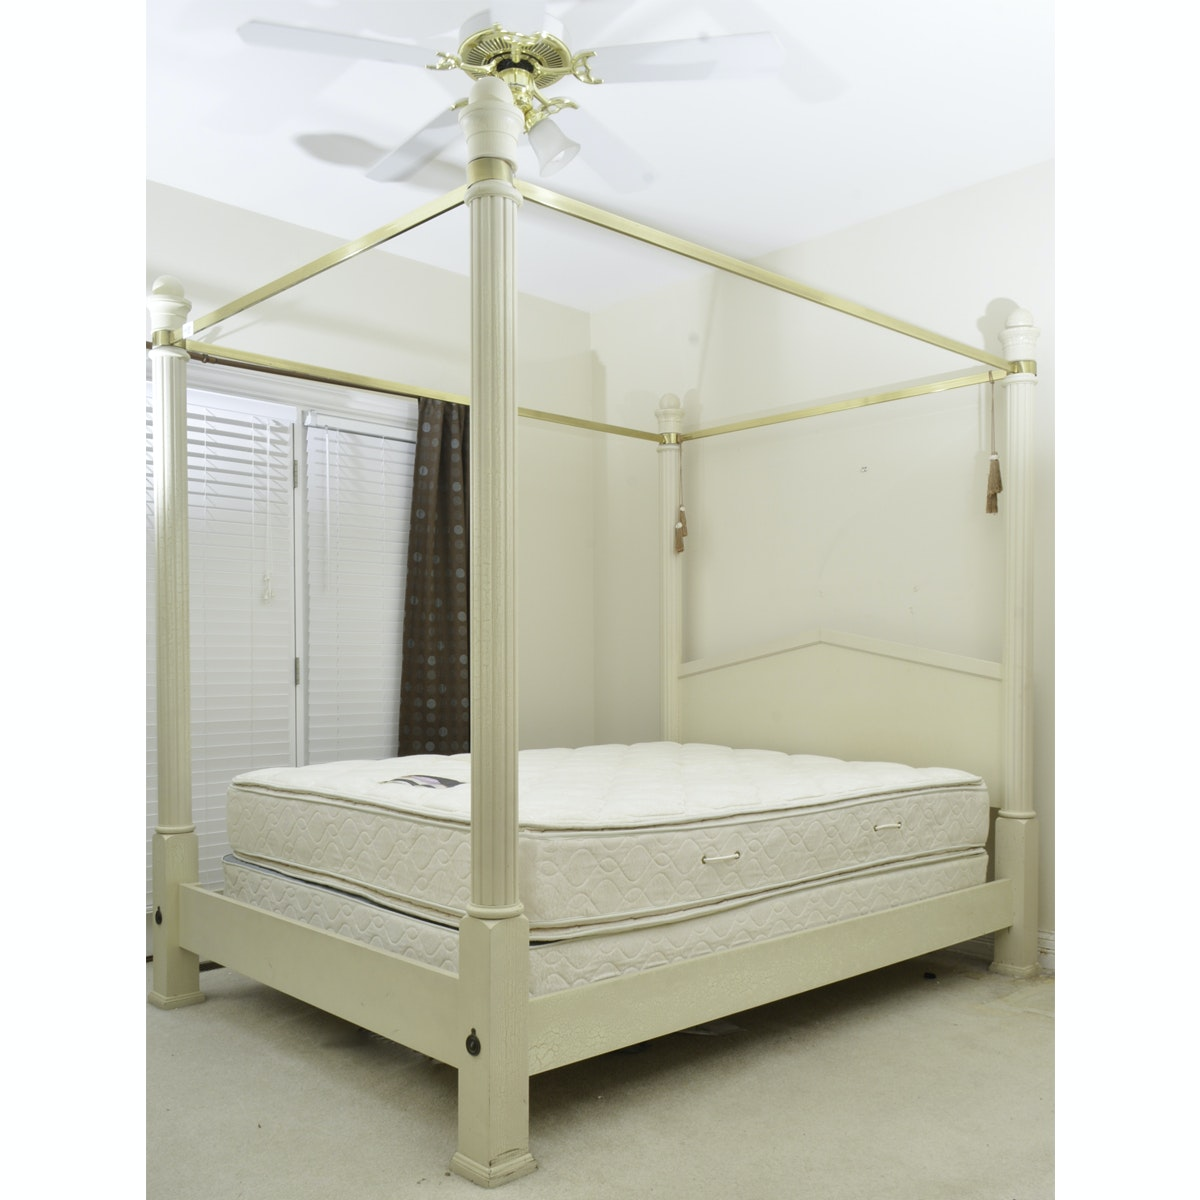 Lineage Four Poster Canopy Bed